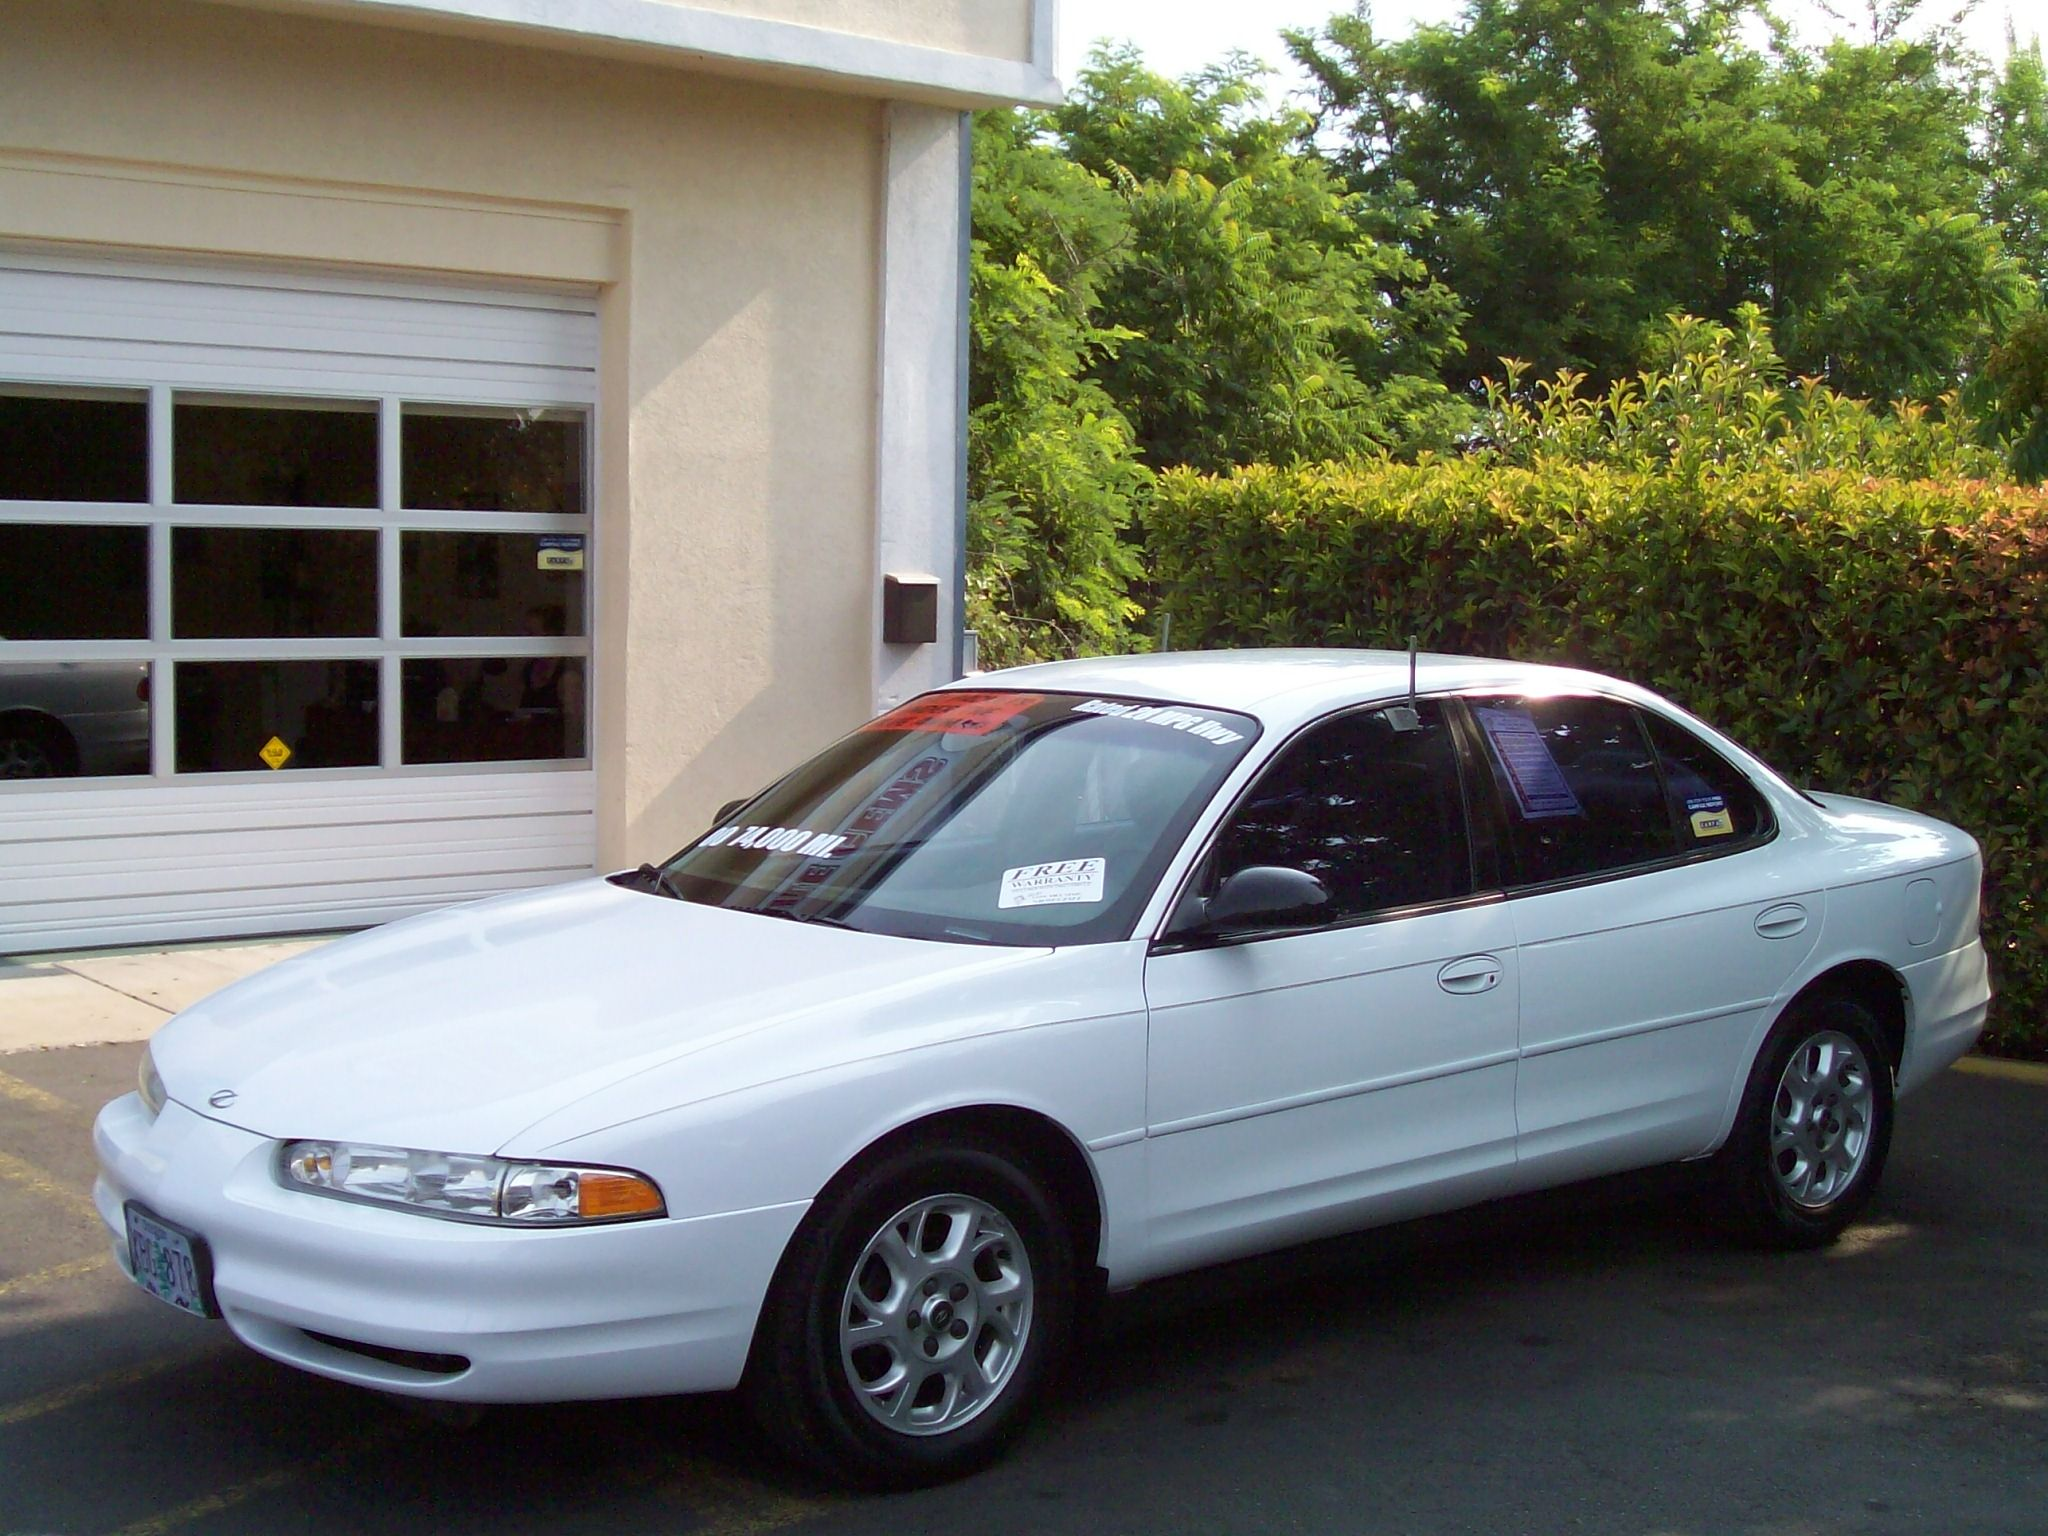 2000 oldsmobile intrigue had one of these nice car